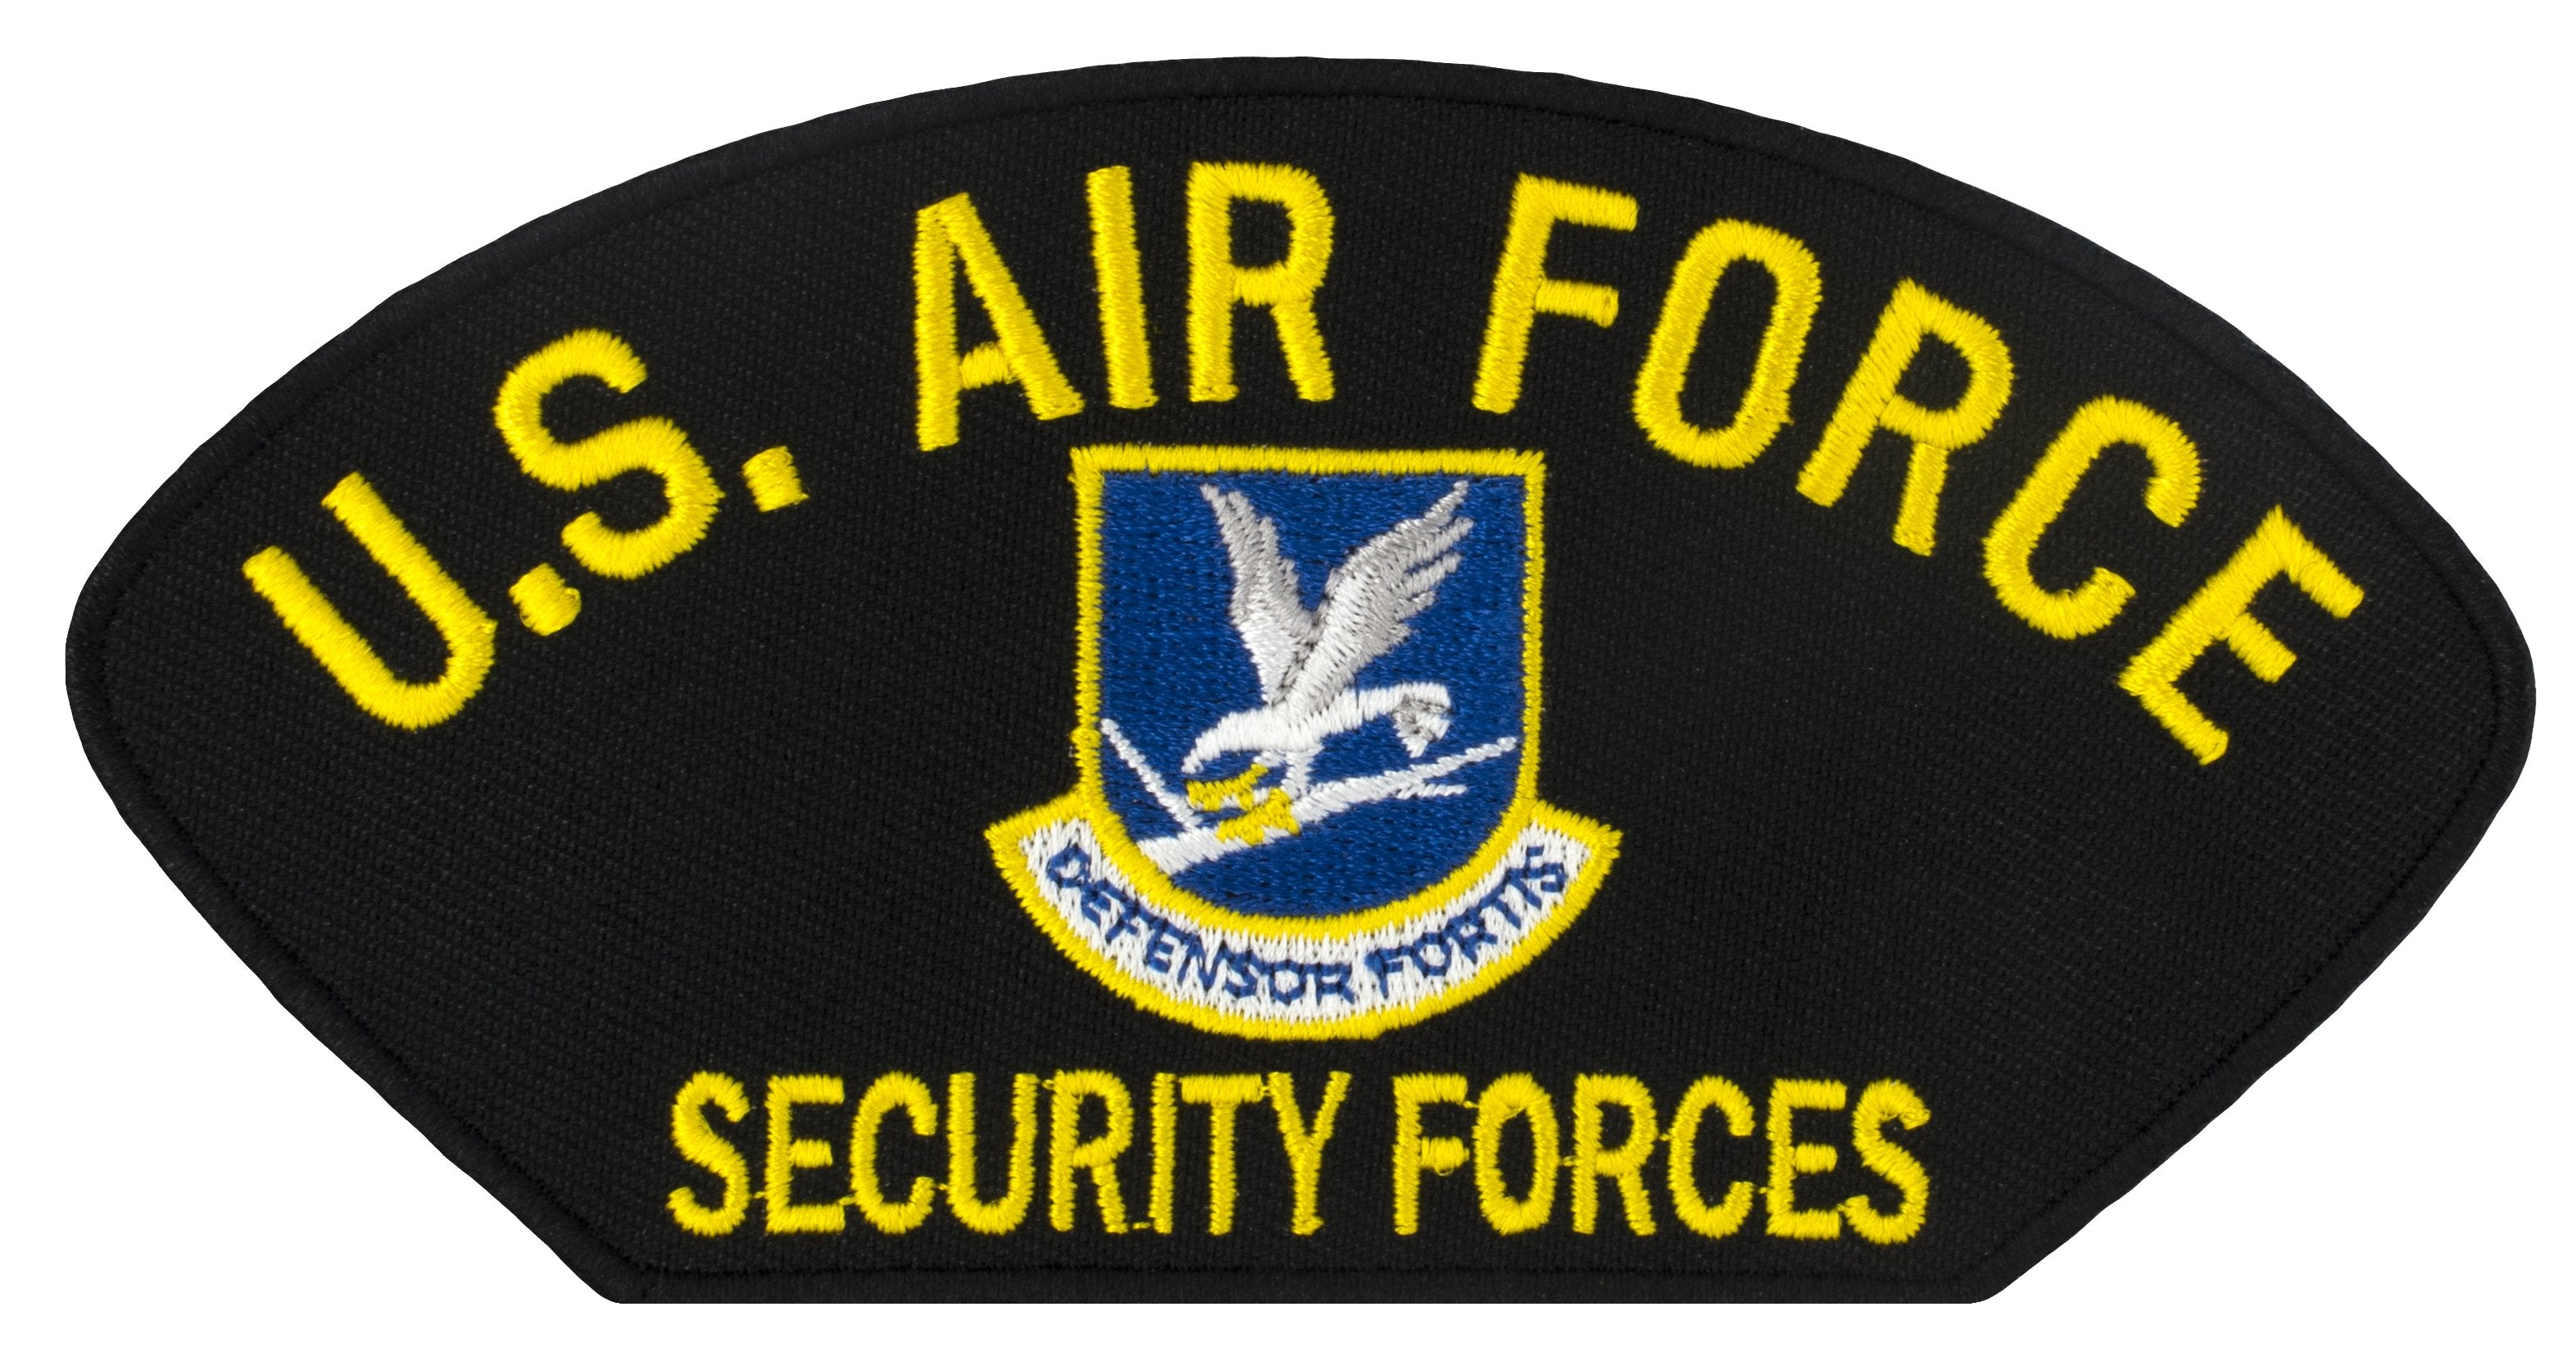 "US Air Force Security Forces Embroidered Patch 5 3/16"" x 2 5/8"""